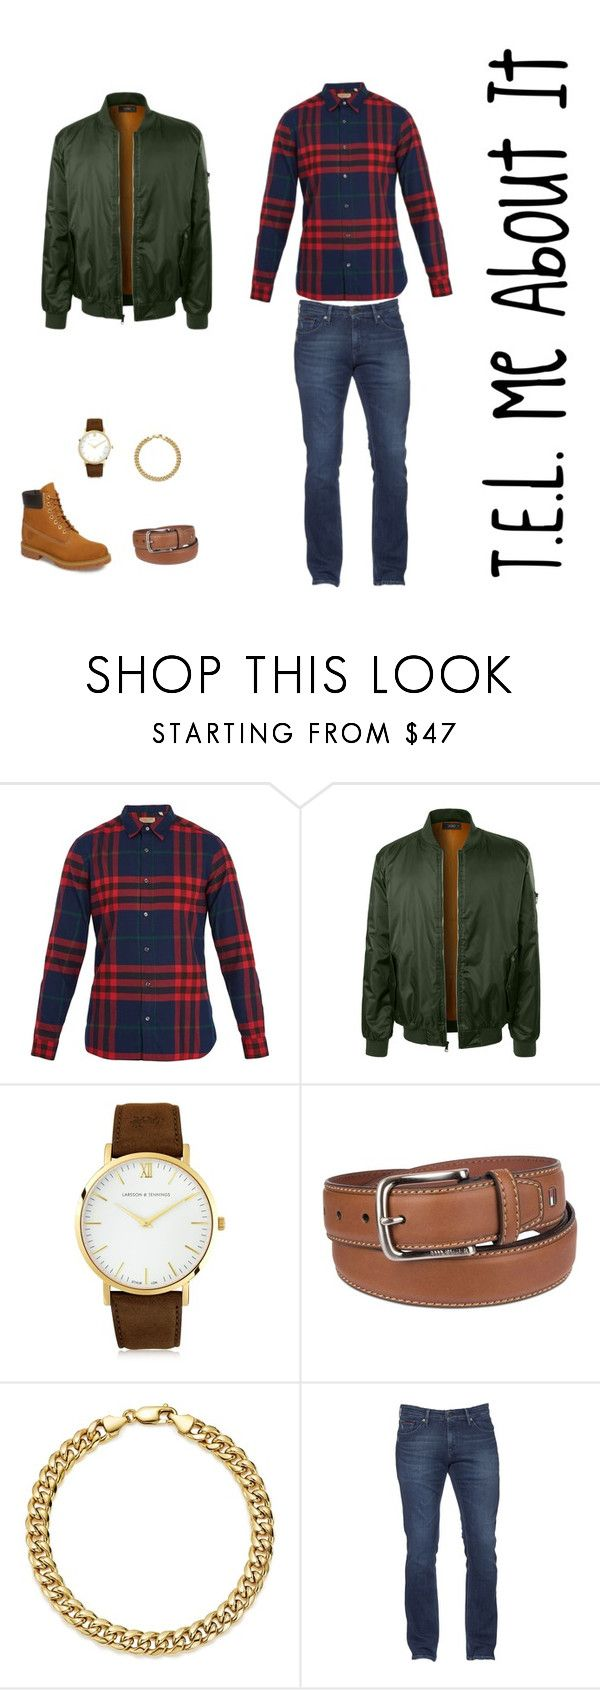 """""""Bomber x Plaid x Brown Accessories"""" by teawithiff on Polyvore featuring Burberry, LE3NO, Larsson & Jennings, Tommy Hilfiger, Bloomingdale's, Timberland, men's fashion and menswear"""